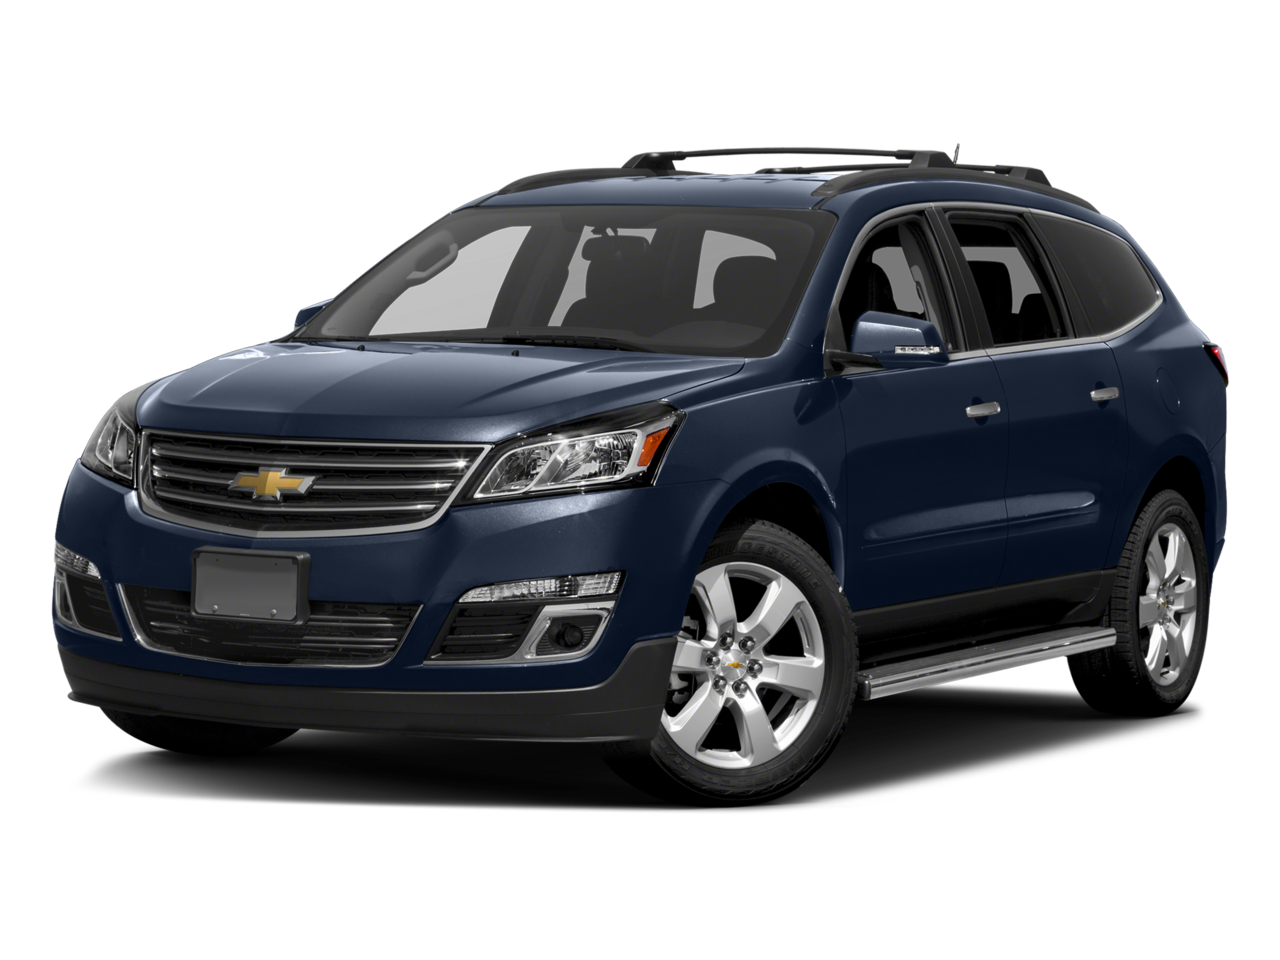 2017 chevy traverse mccluskey chevrolet. Black Bedroom Furniture Sets. Home Design Ideas